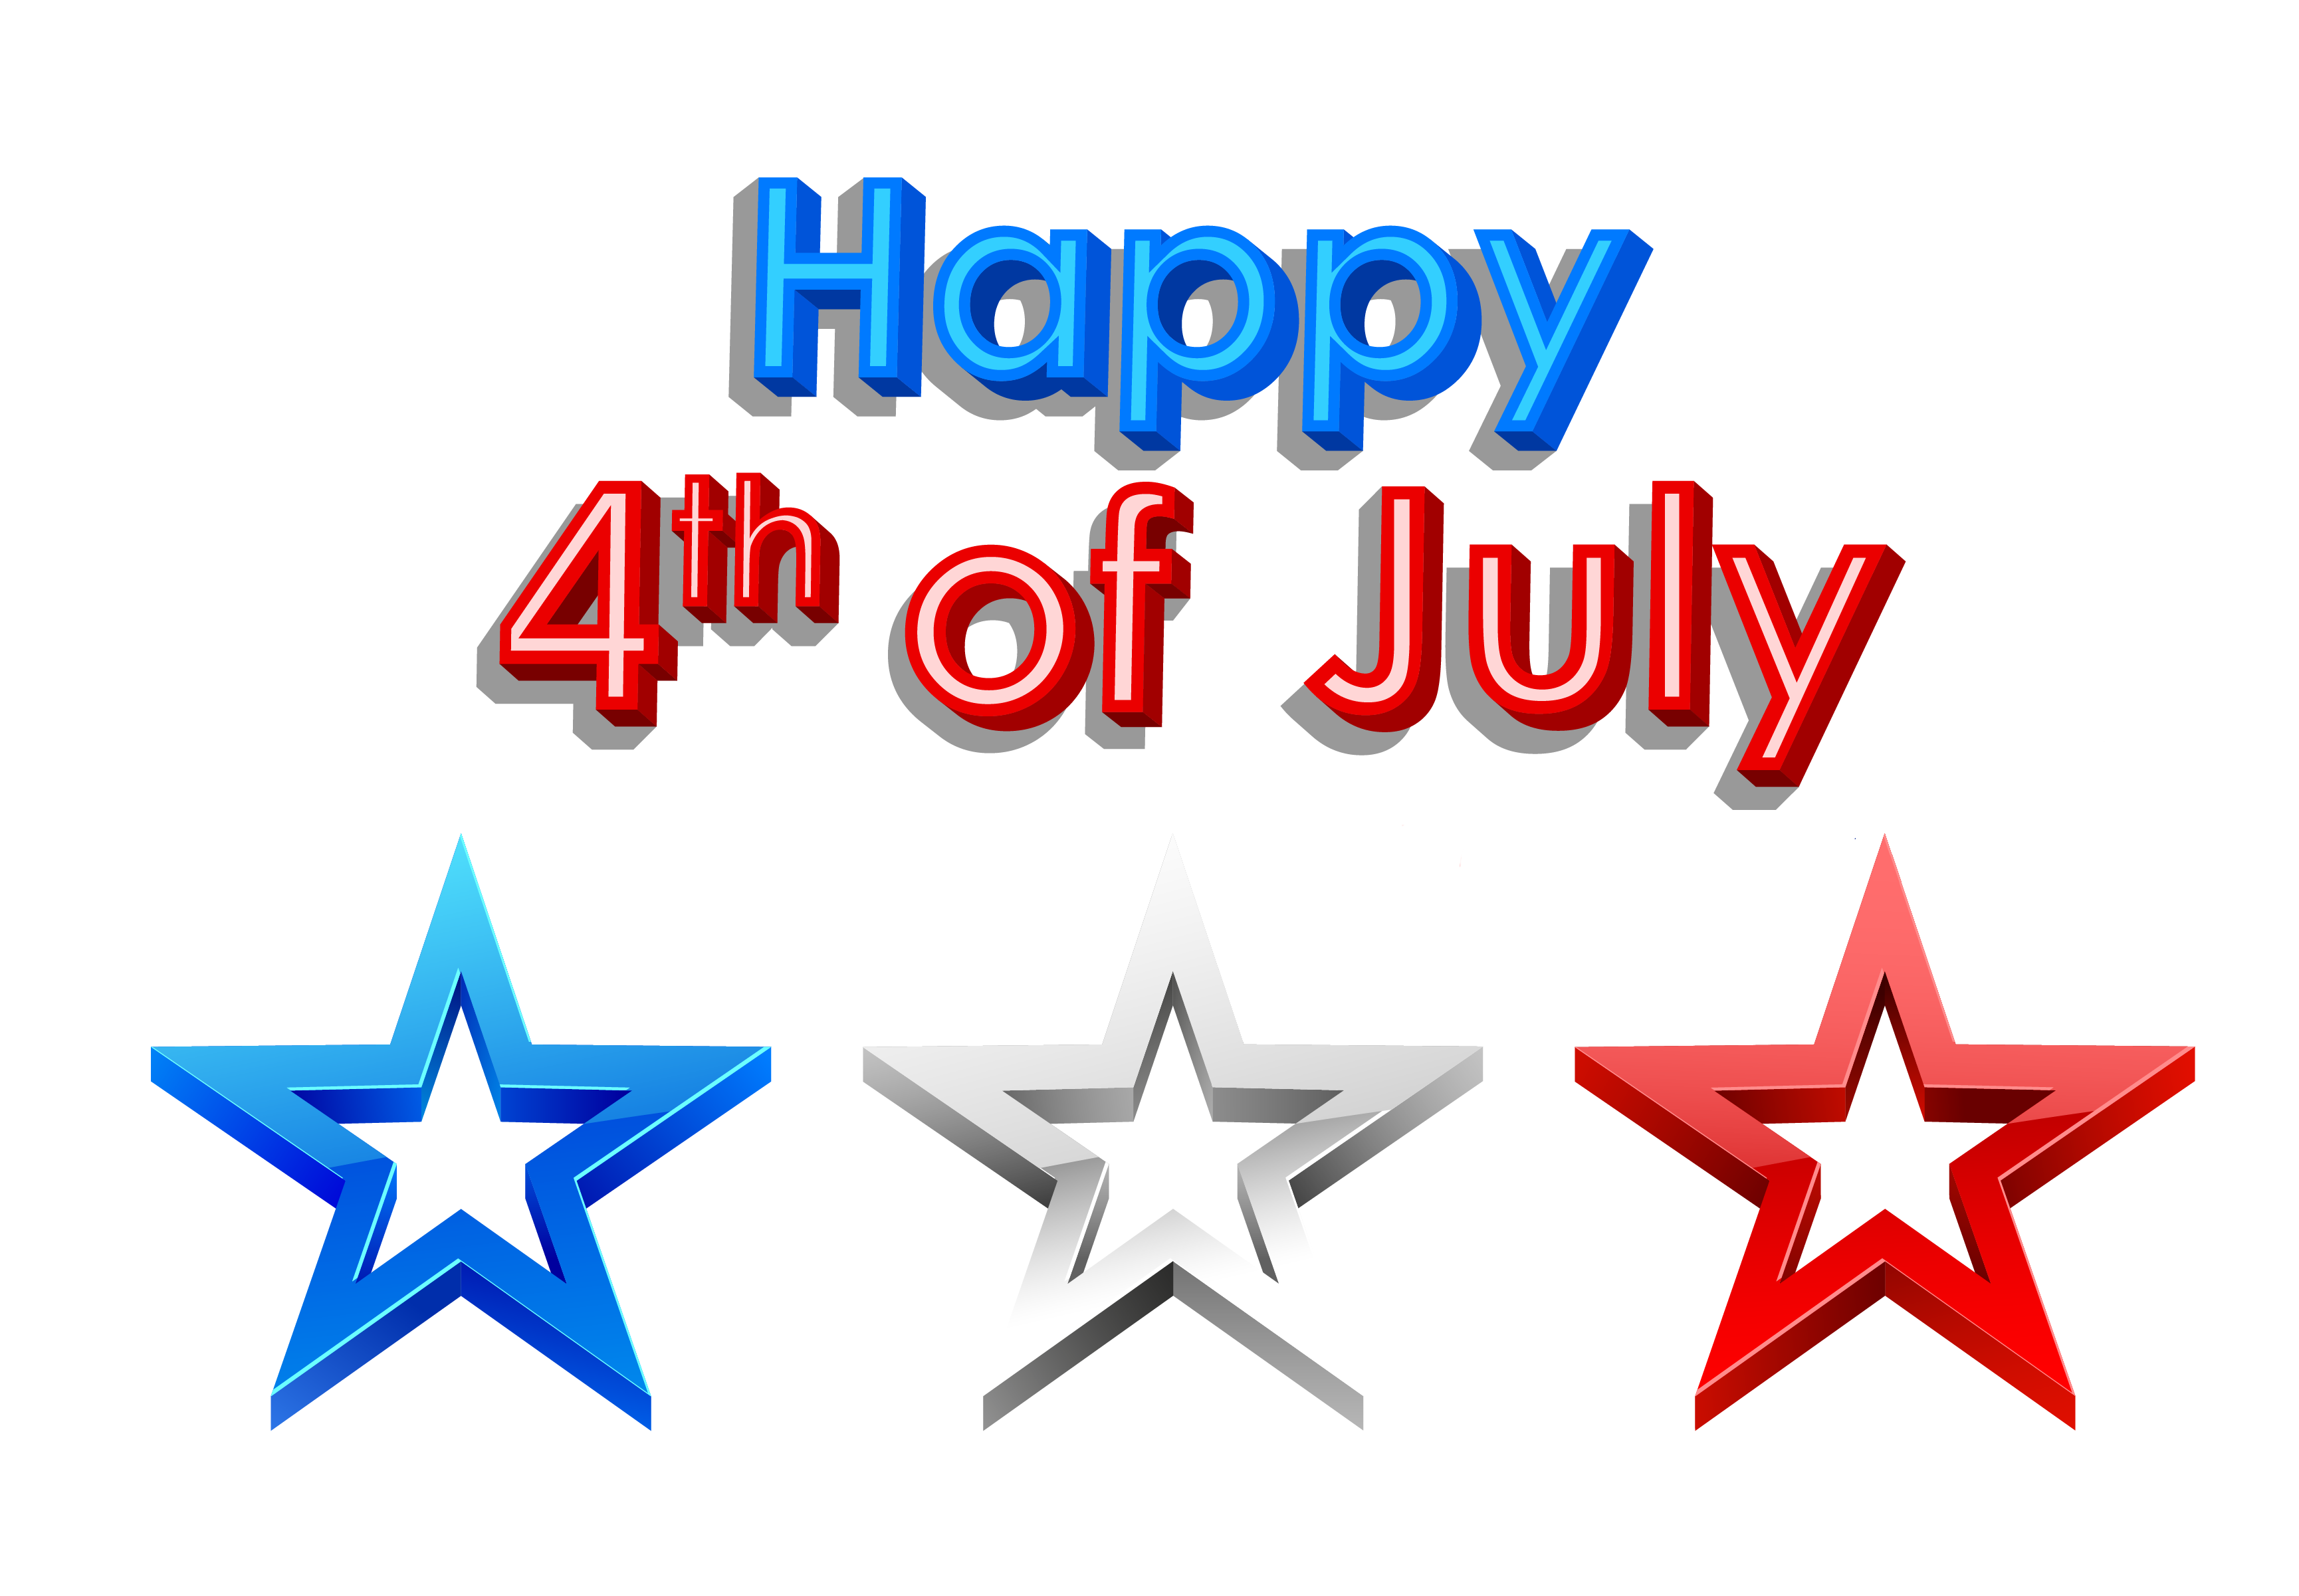 4th of july clipart 2018 graphic free library Happy 4th of July Clipart Free Images graphic free library